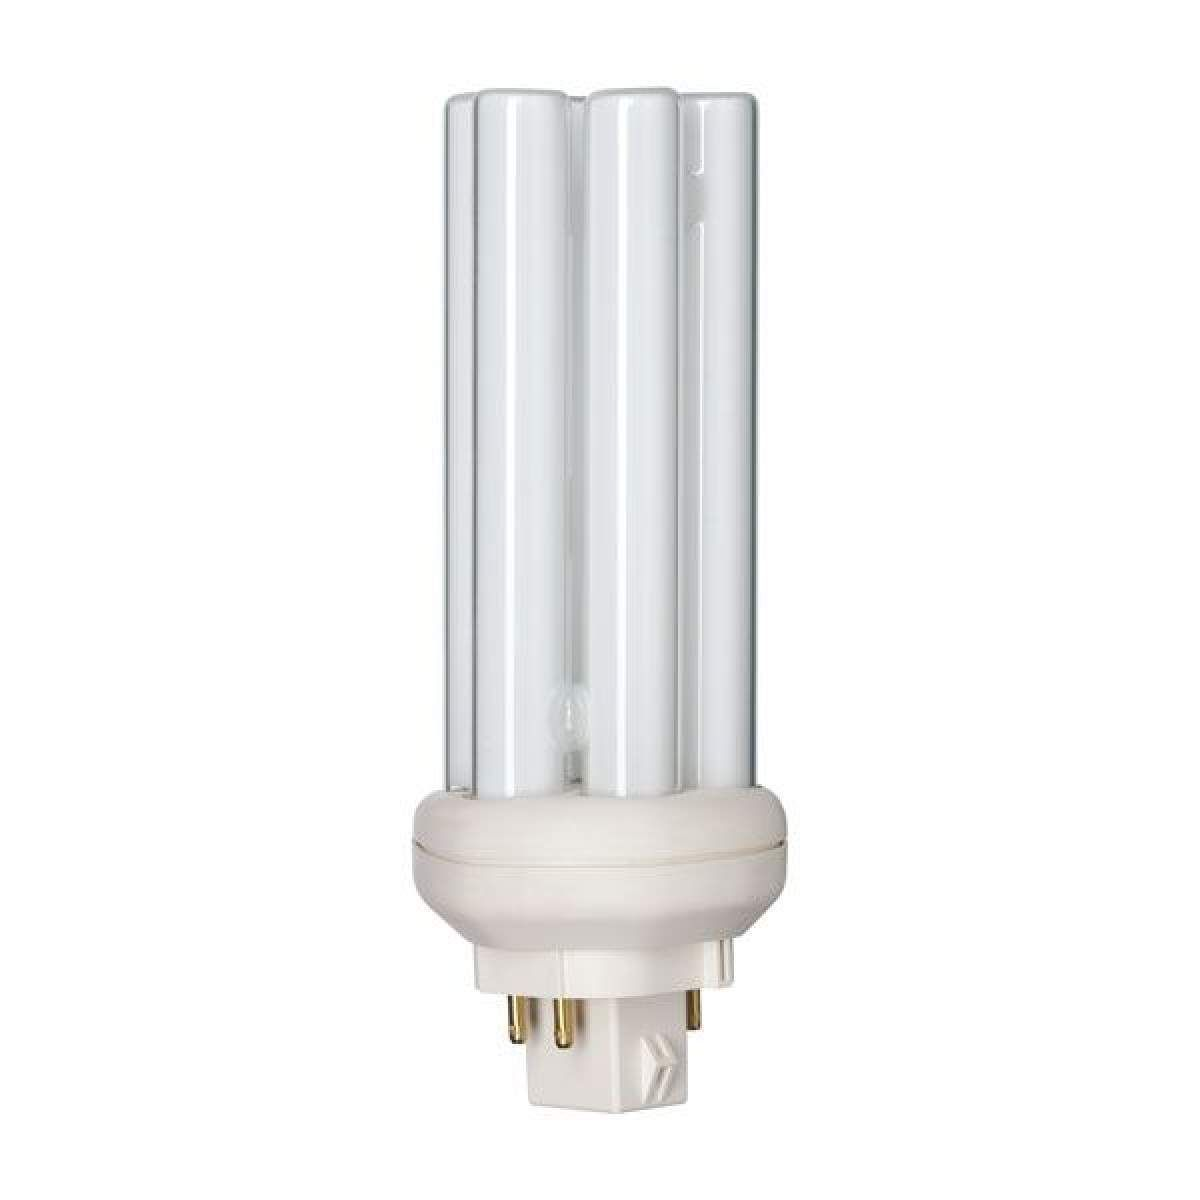 Philips Gx24q Compact Fluorescent Lamp Master Pl T Compact Fluorescent Gx24q Lamp Master Philips In 2020 Fluorescent Light Bulb Fluorescent Light Fluorescent Bulb